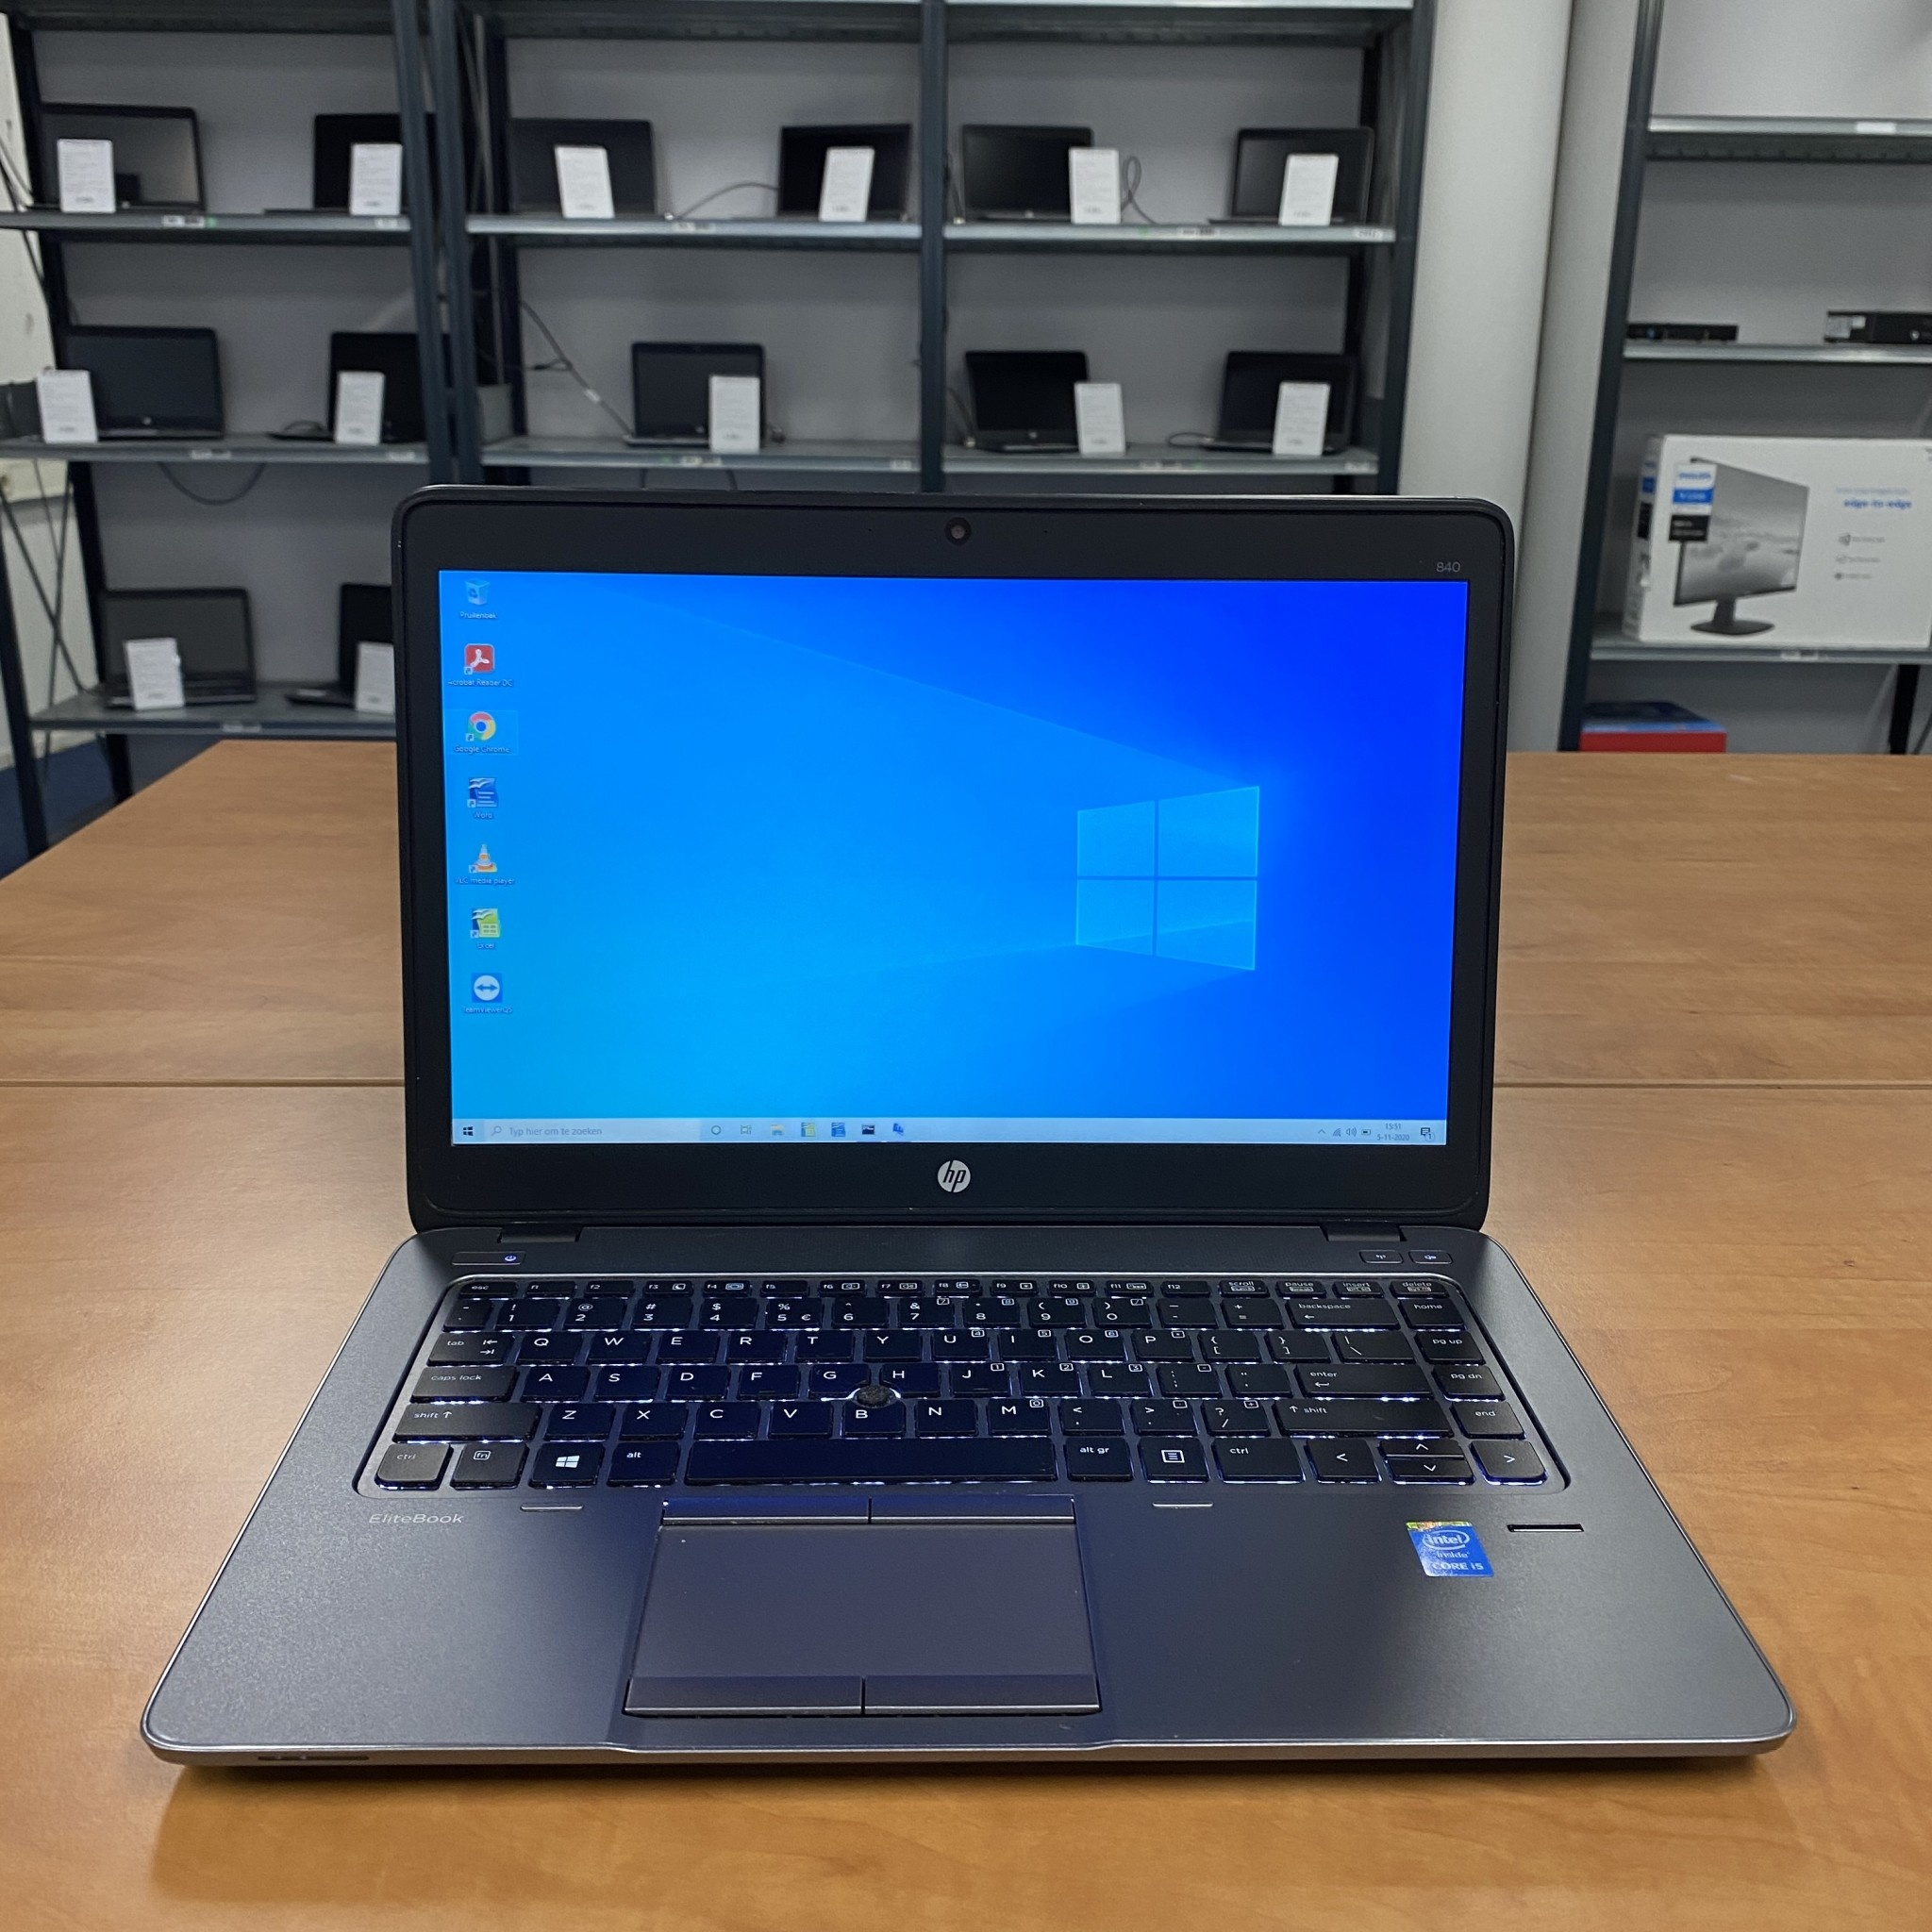 HP Elitebook 840 G2 i5-5200U 8Gb 180Gb SSD 14.1inch laptop